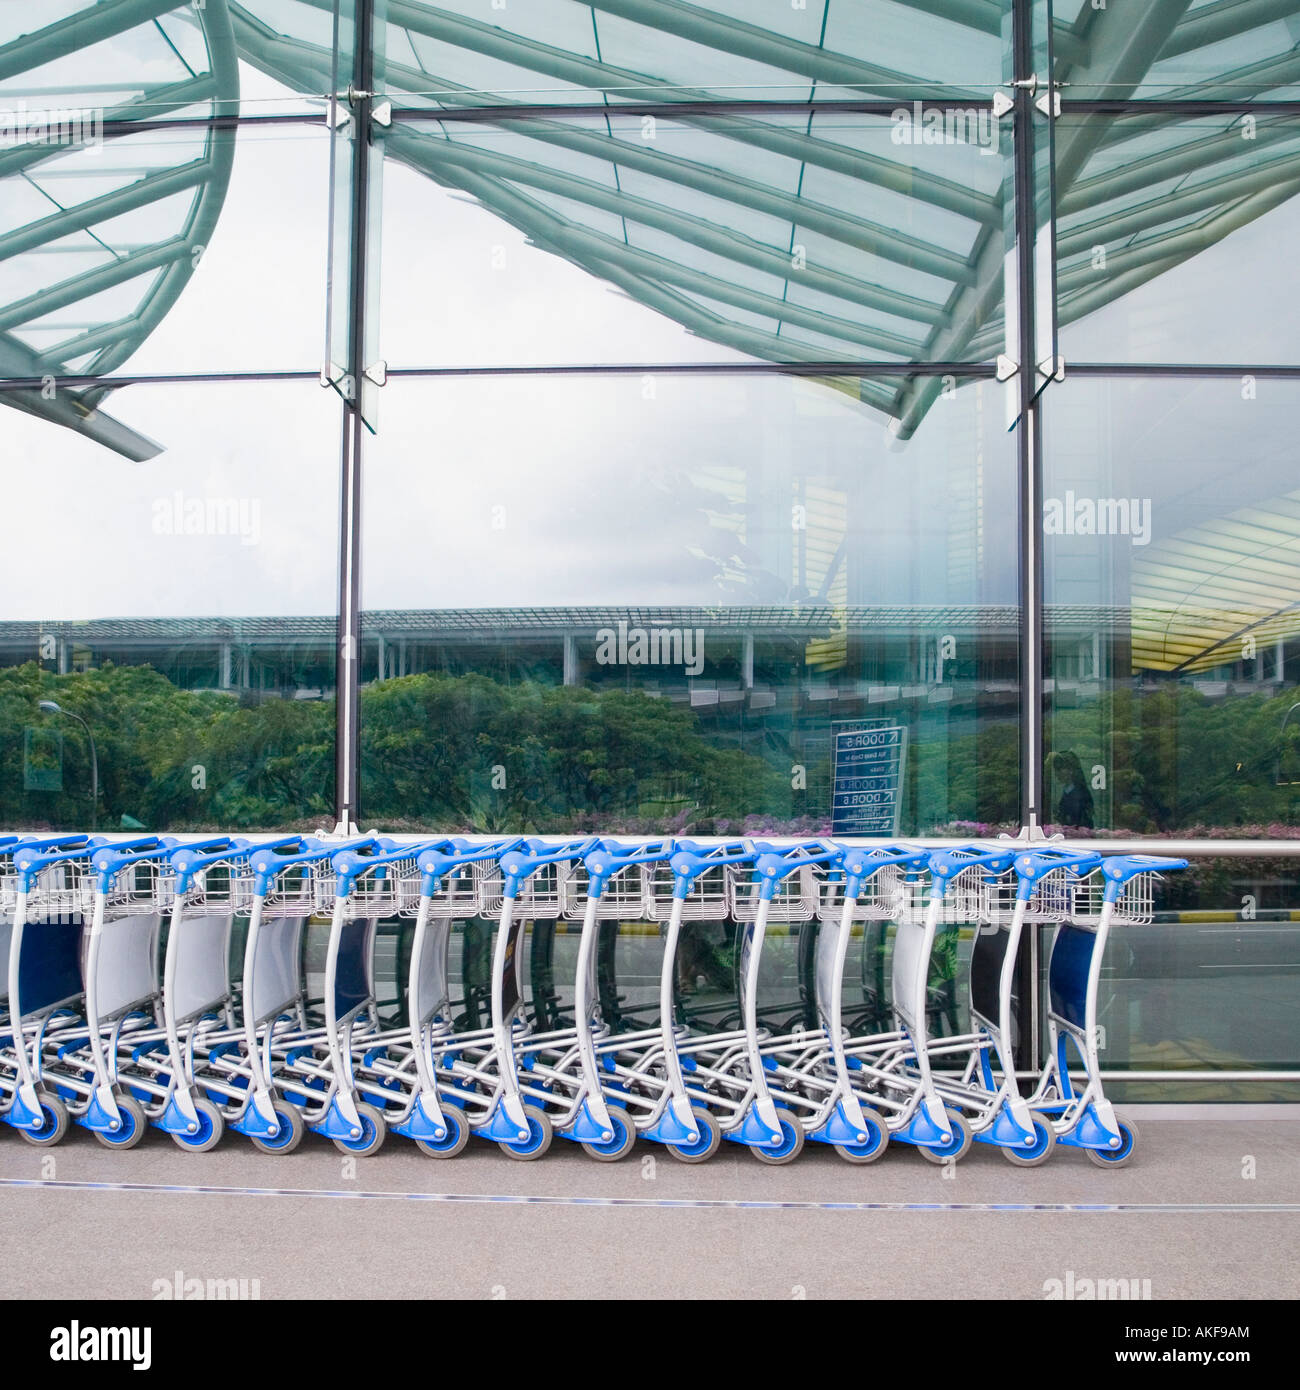 Luggage carts in a row outside an airport - Stock Image